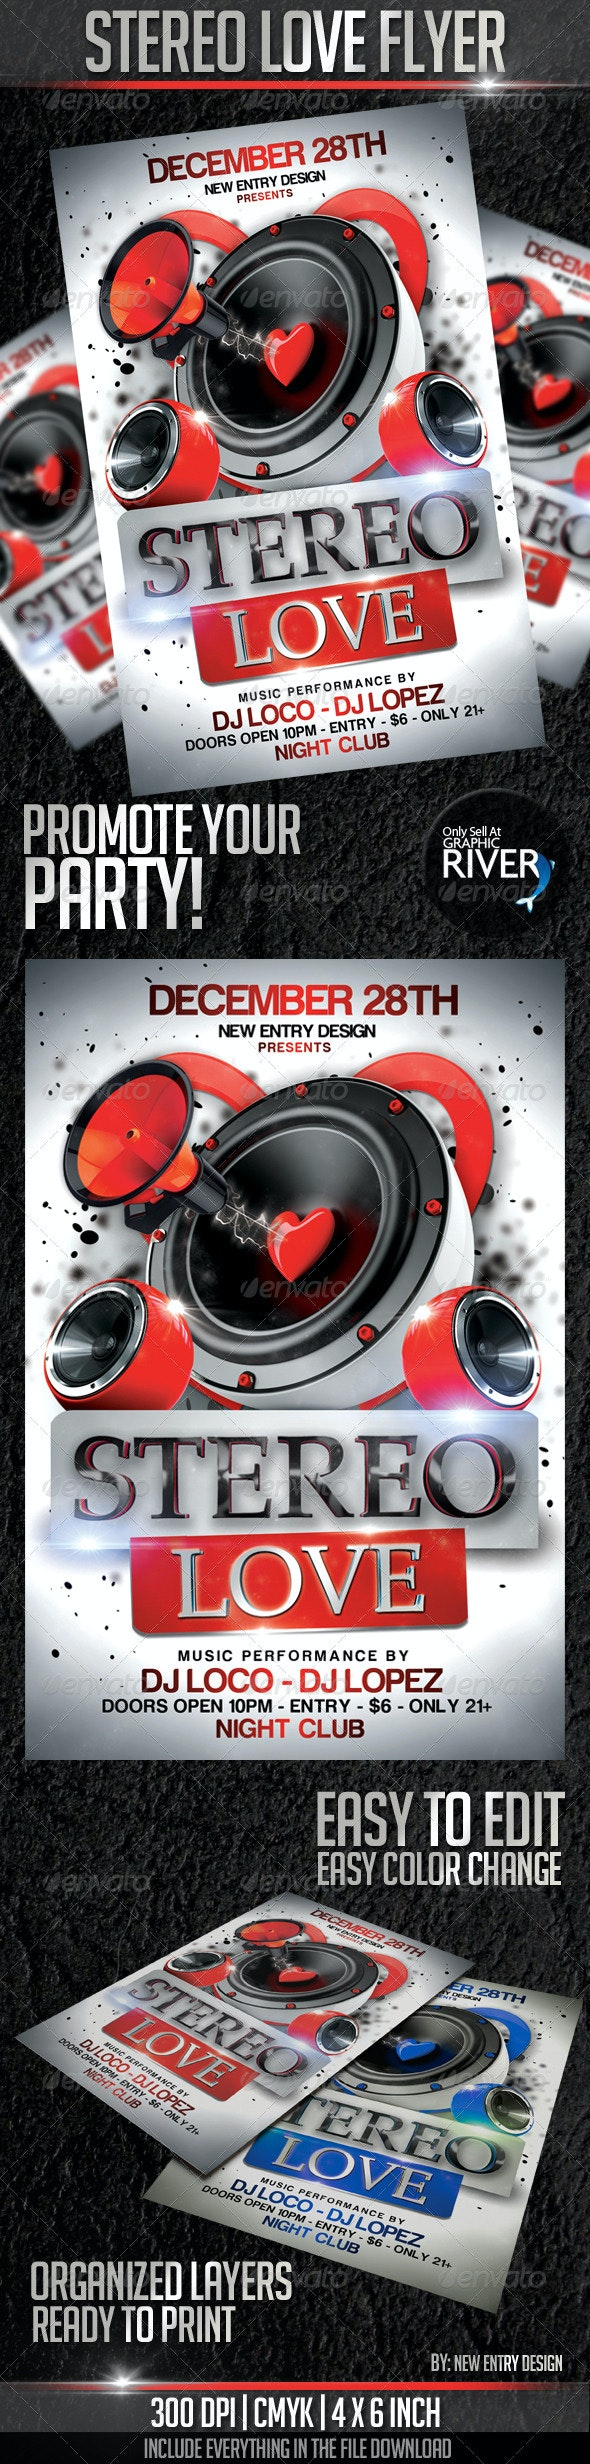 Stereo Love Flyer Template - Clubs & Parties Events